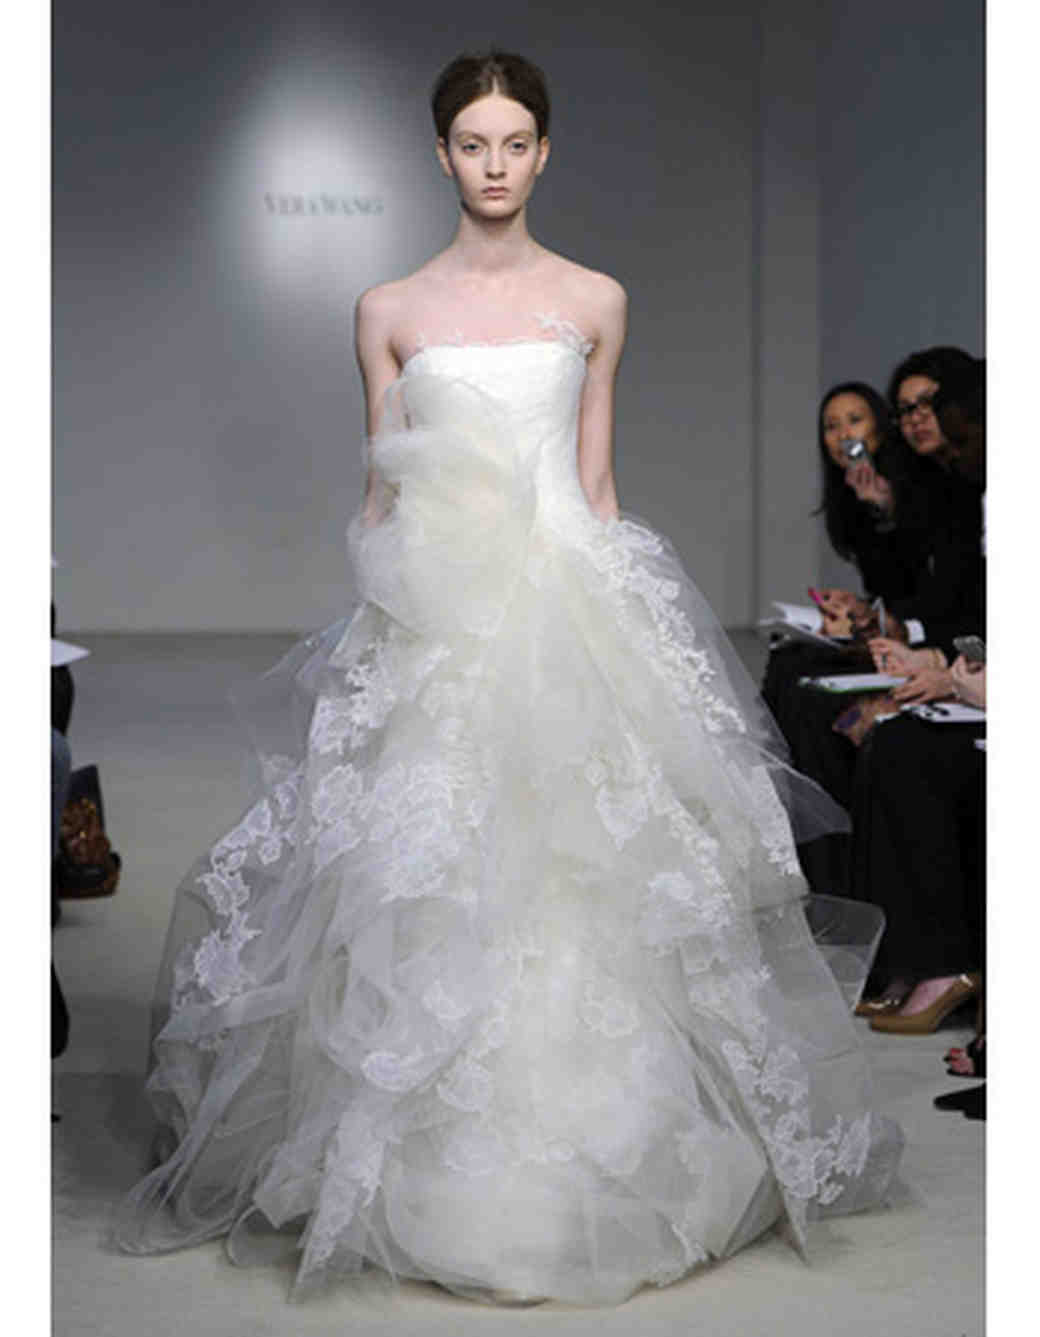 Tulle Princess Ball Gowns from Spring 2012 Bridal Fashion